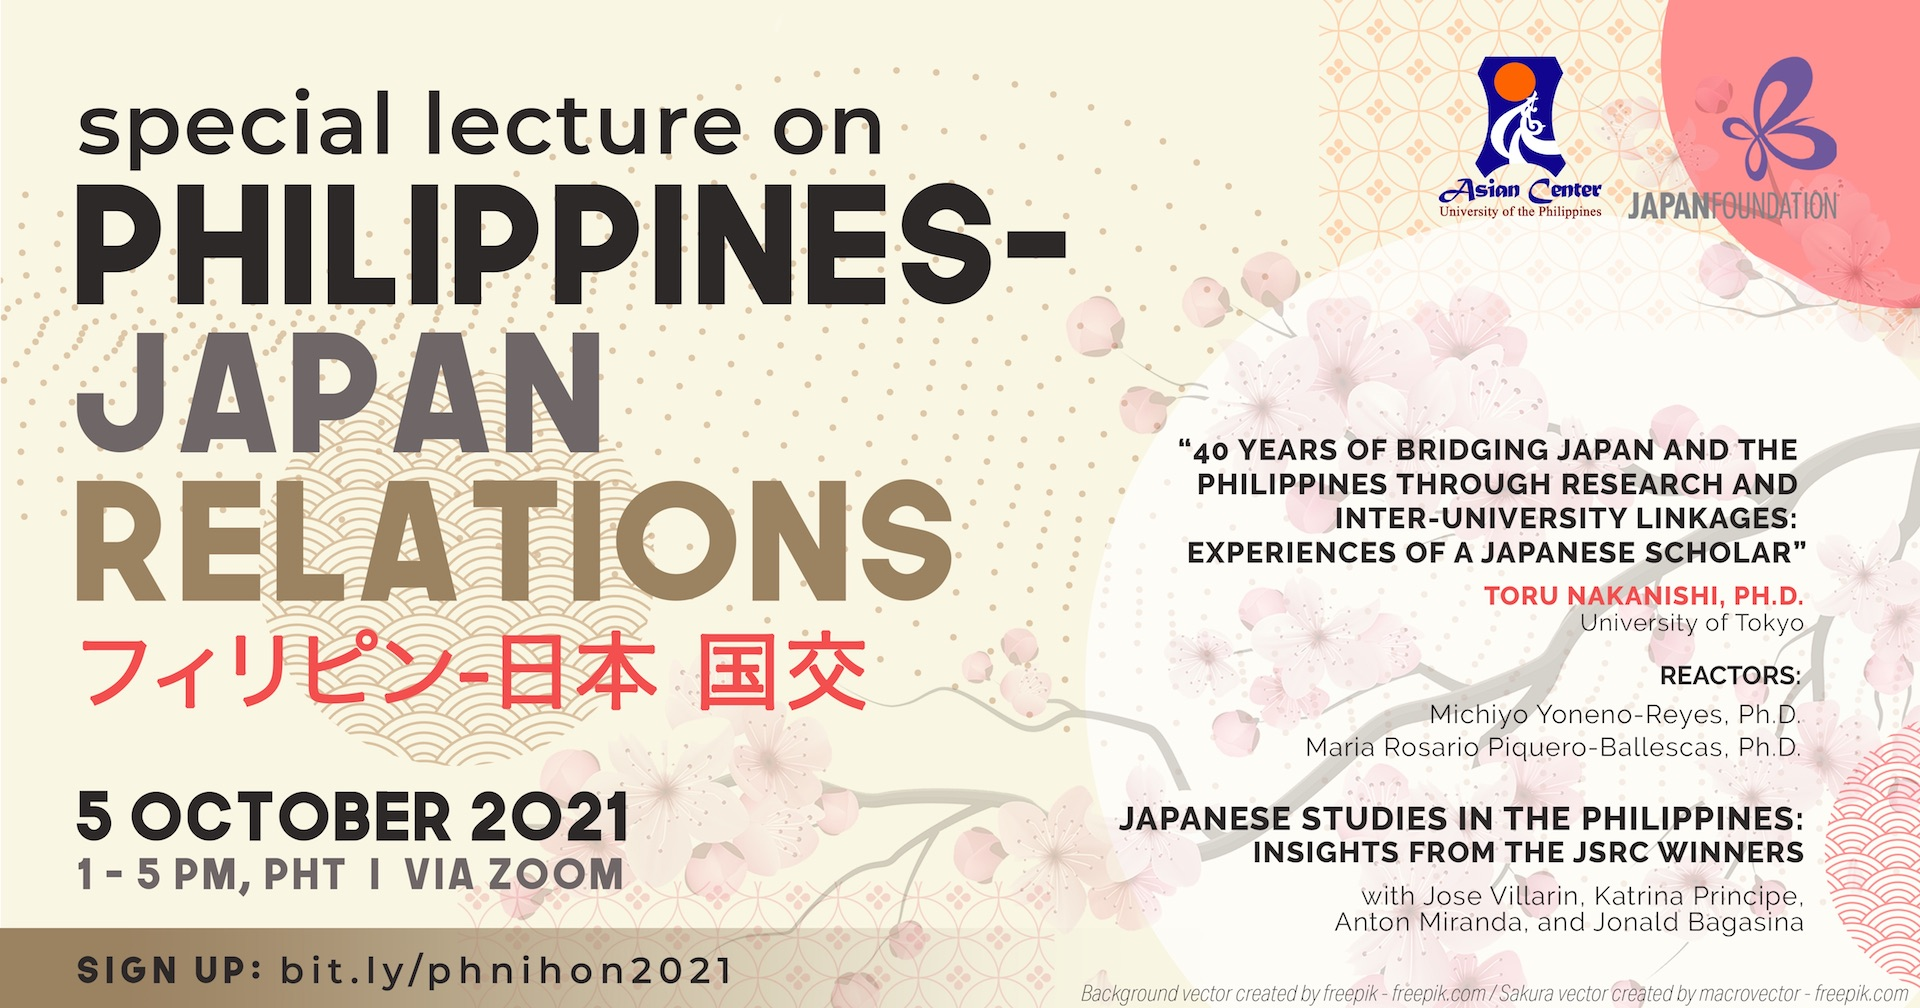 Special Lecture on Philippines-Japan Relations: A Webinar (5 Oct 2021)